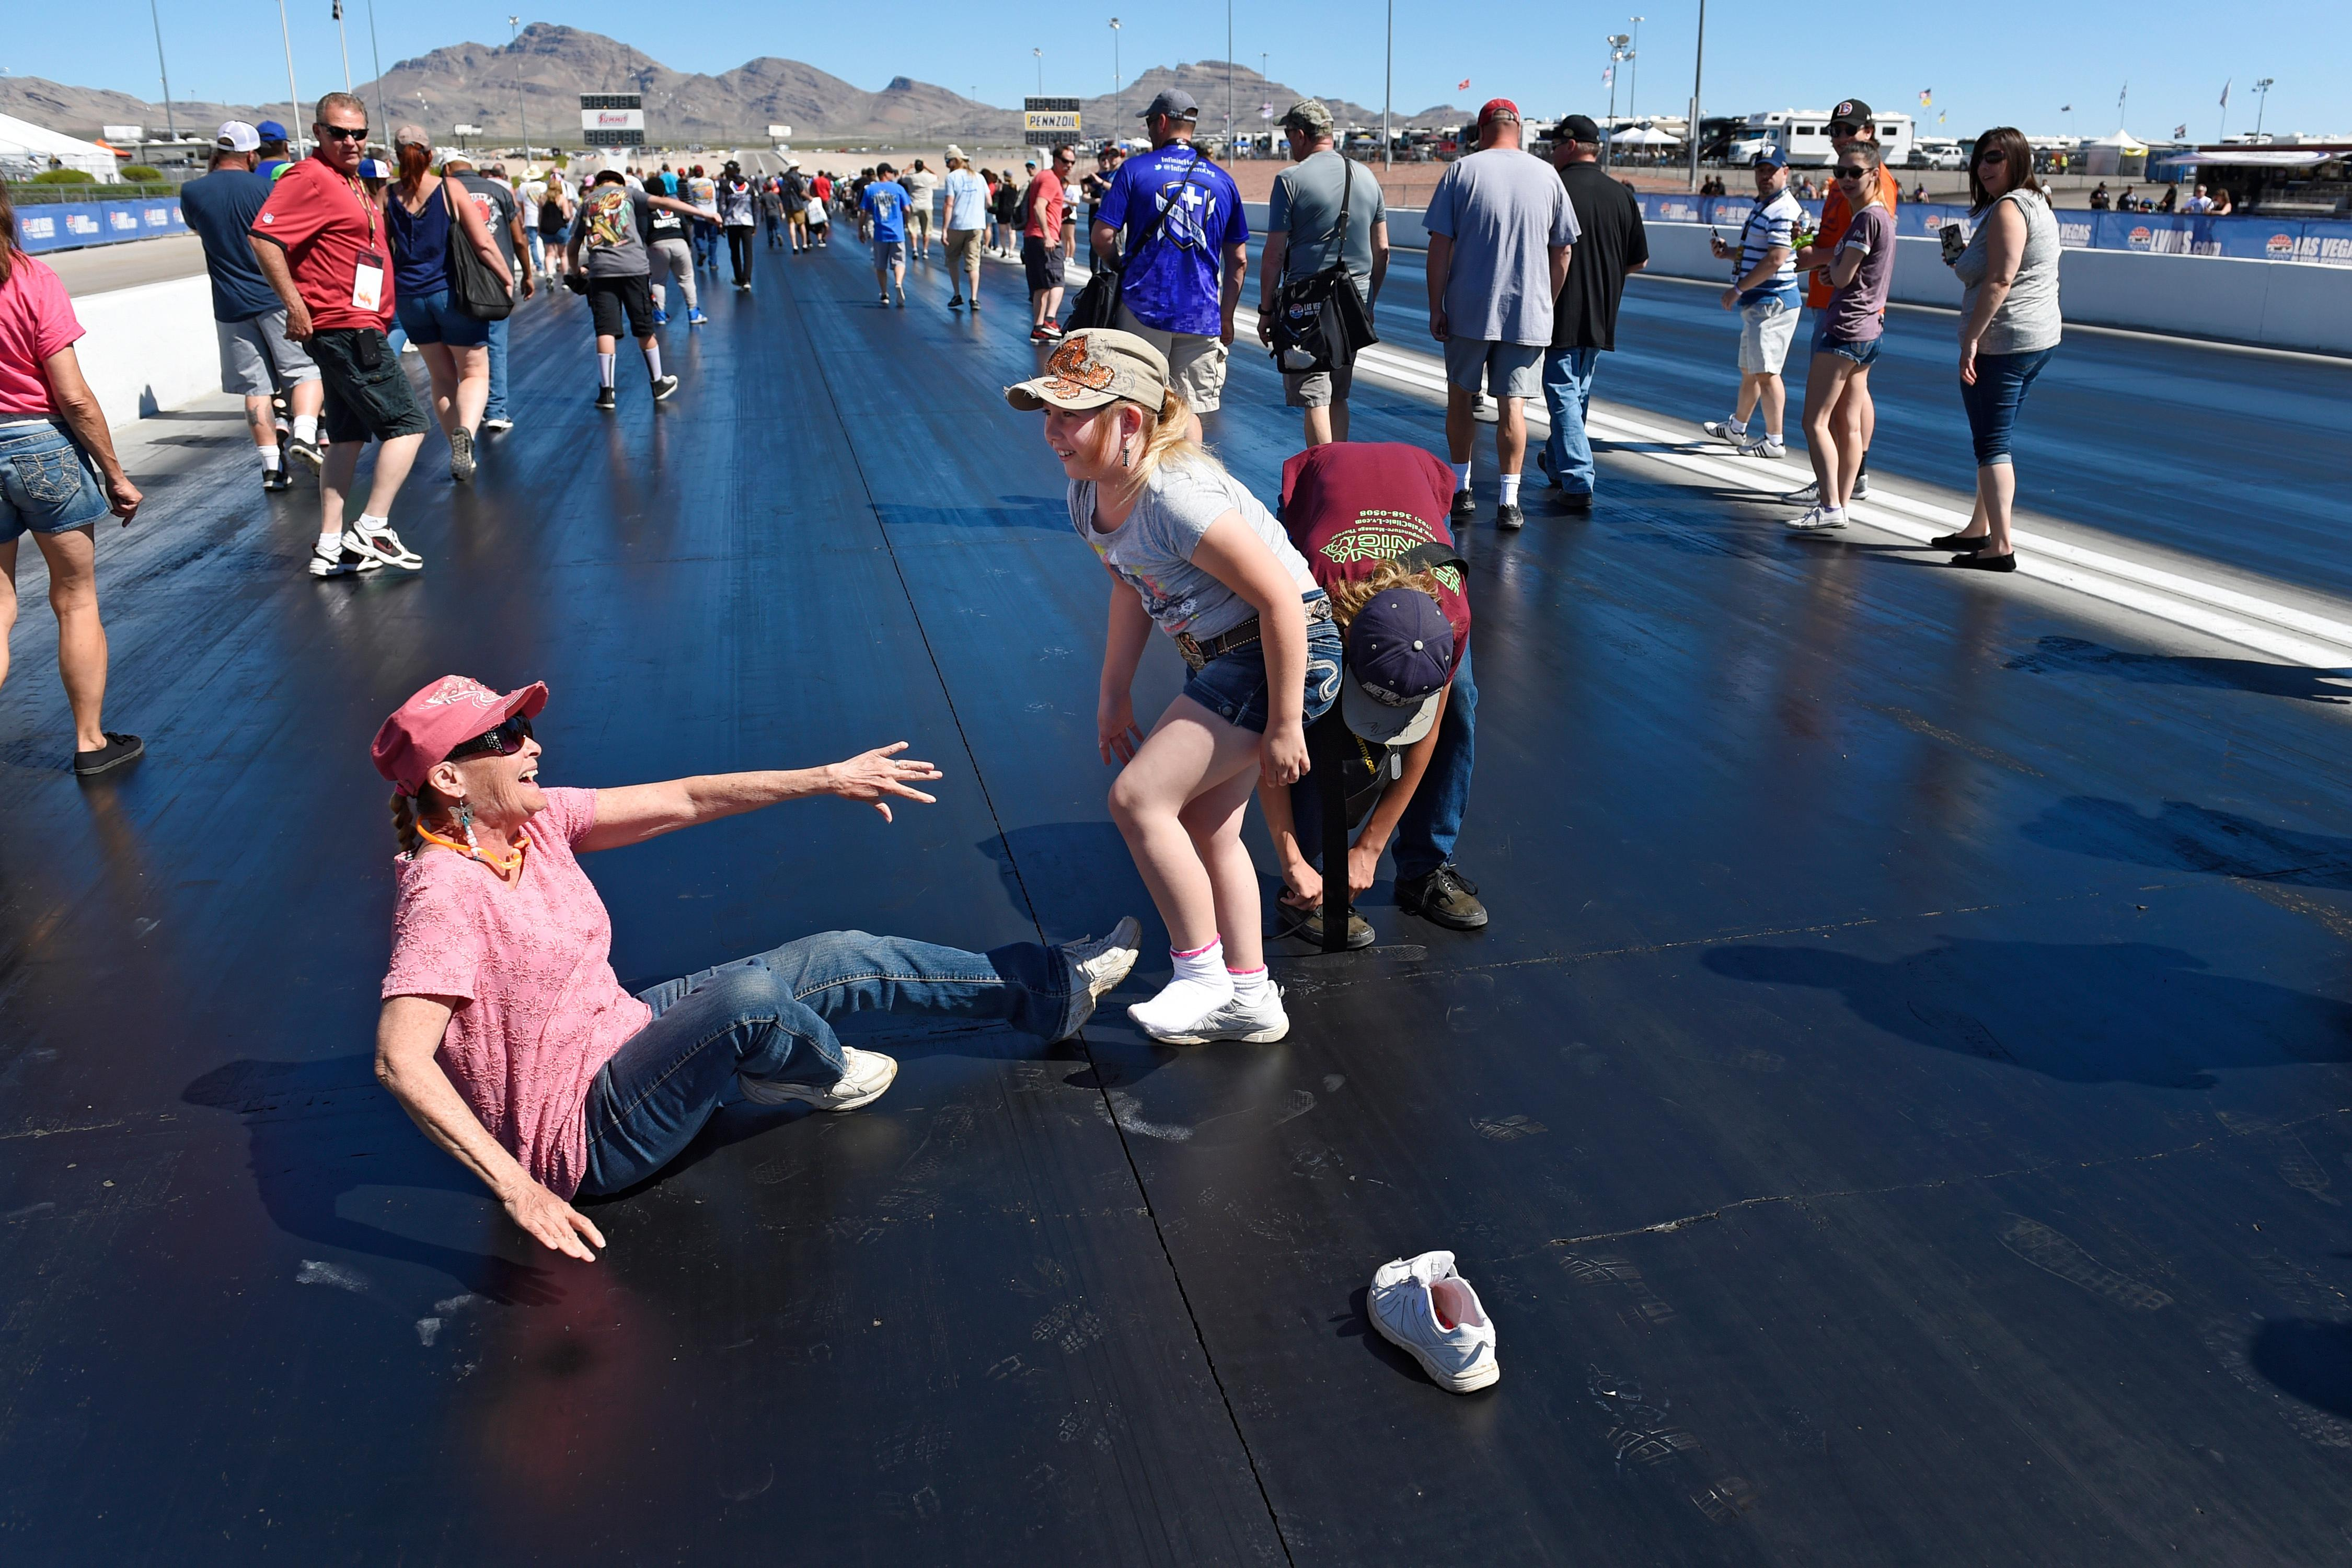 Goldie Dollarhide reaches for help from Macy Dollarhide, who has lost her shoe, during the track walk before the NHRA DENSO Spark Plug Nationals at The Strip at the Las Vegas Motor Speedway Sunday, April 2, 2017. (Sam Morris/Las Vegas News Bureau)